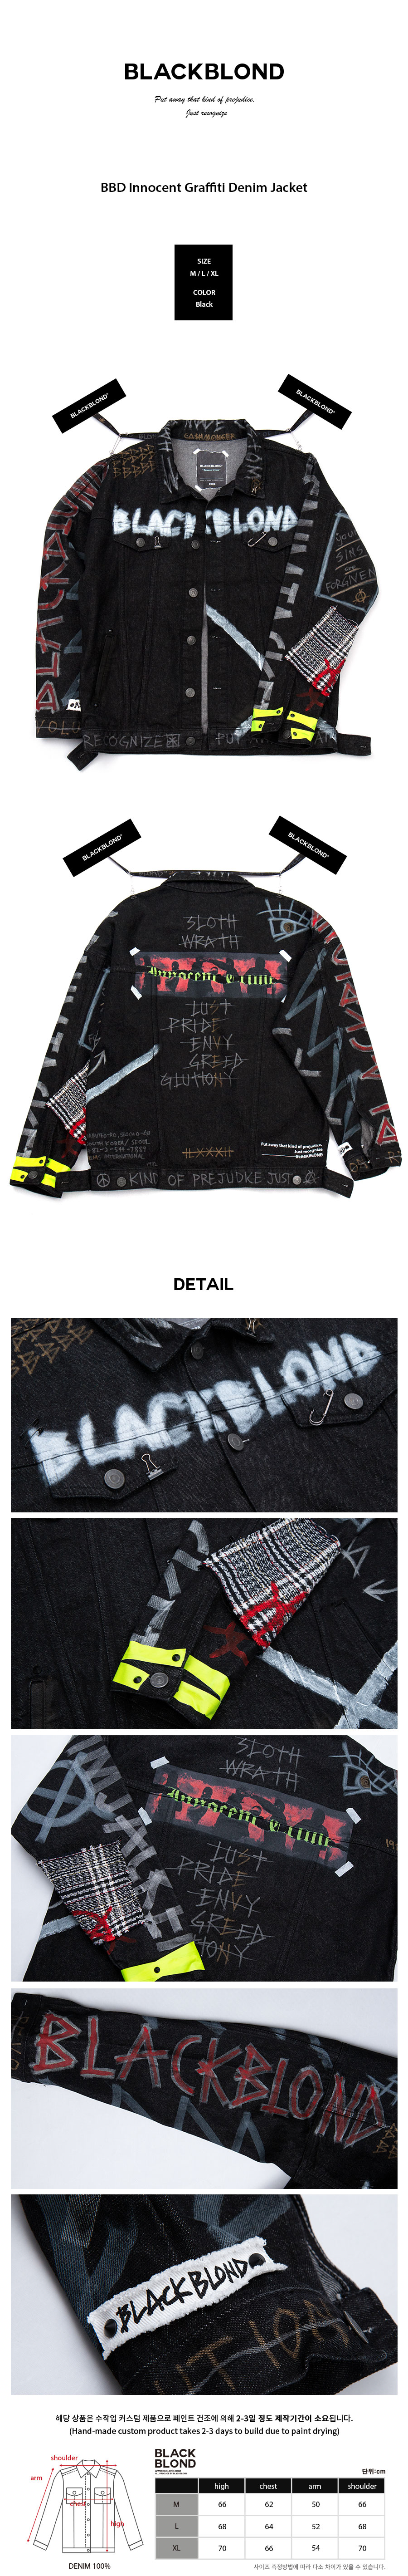 BBD-Innocent-Graffiti-Denim-Jacket-%28Black%29.jpg